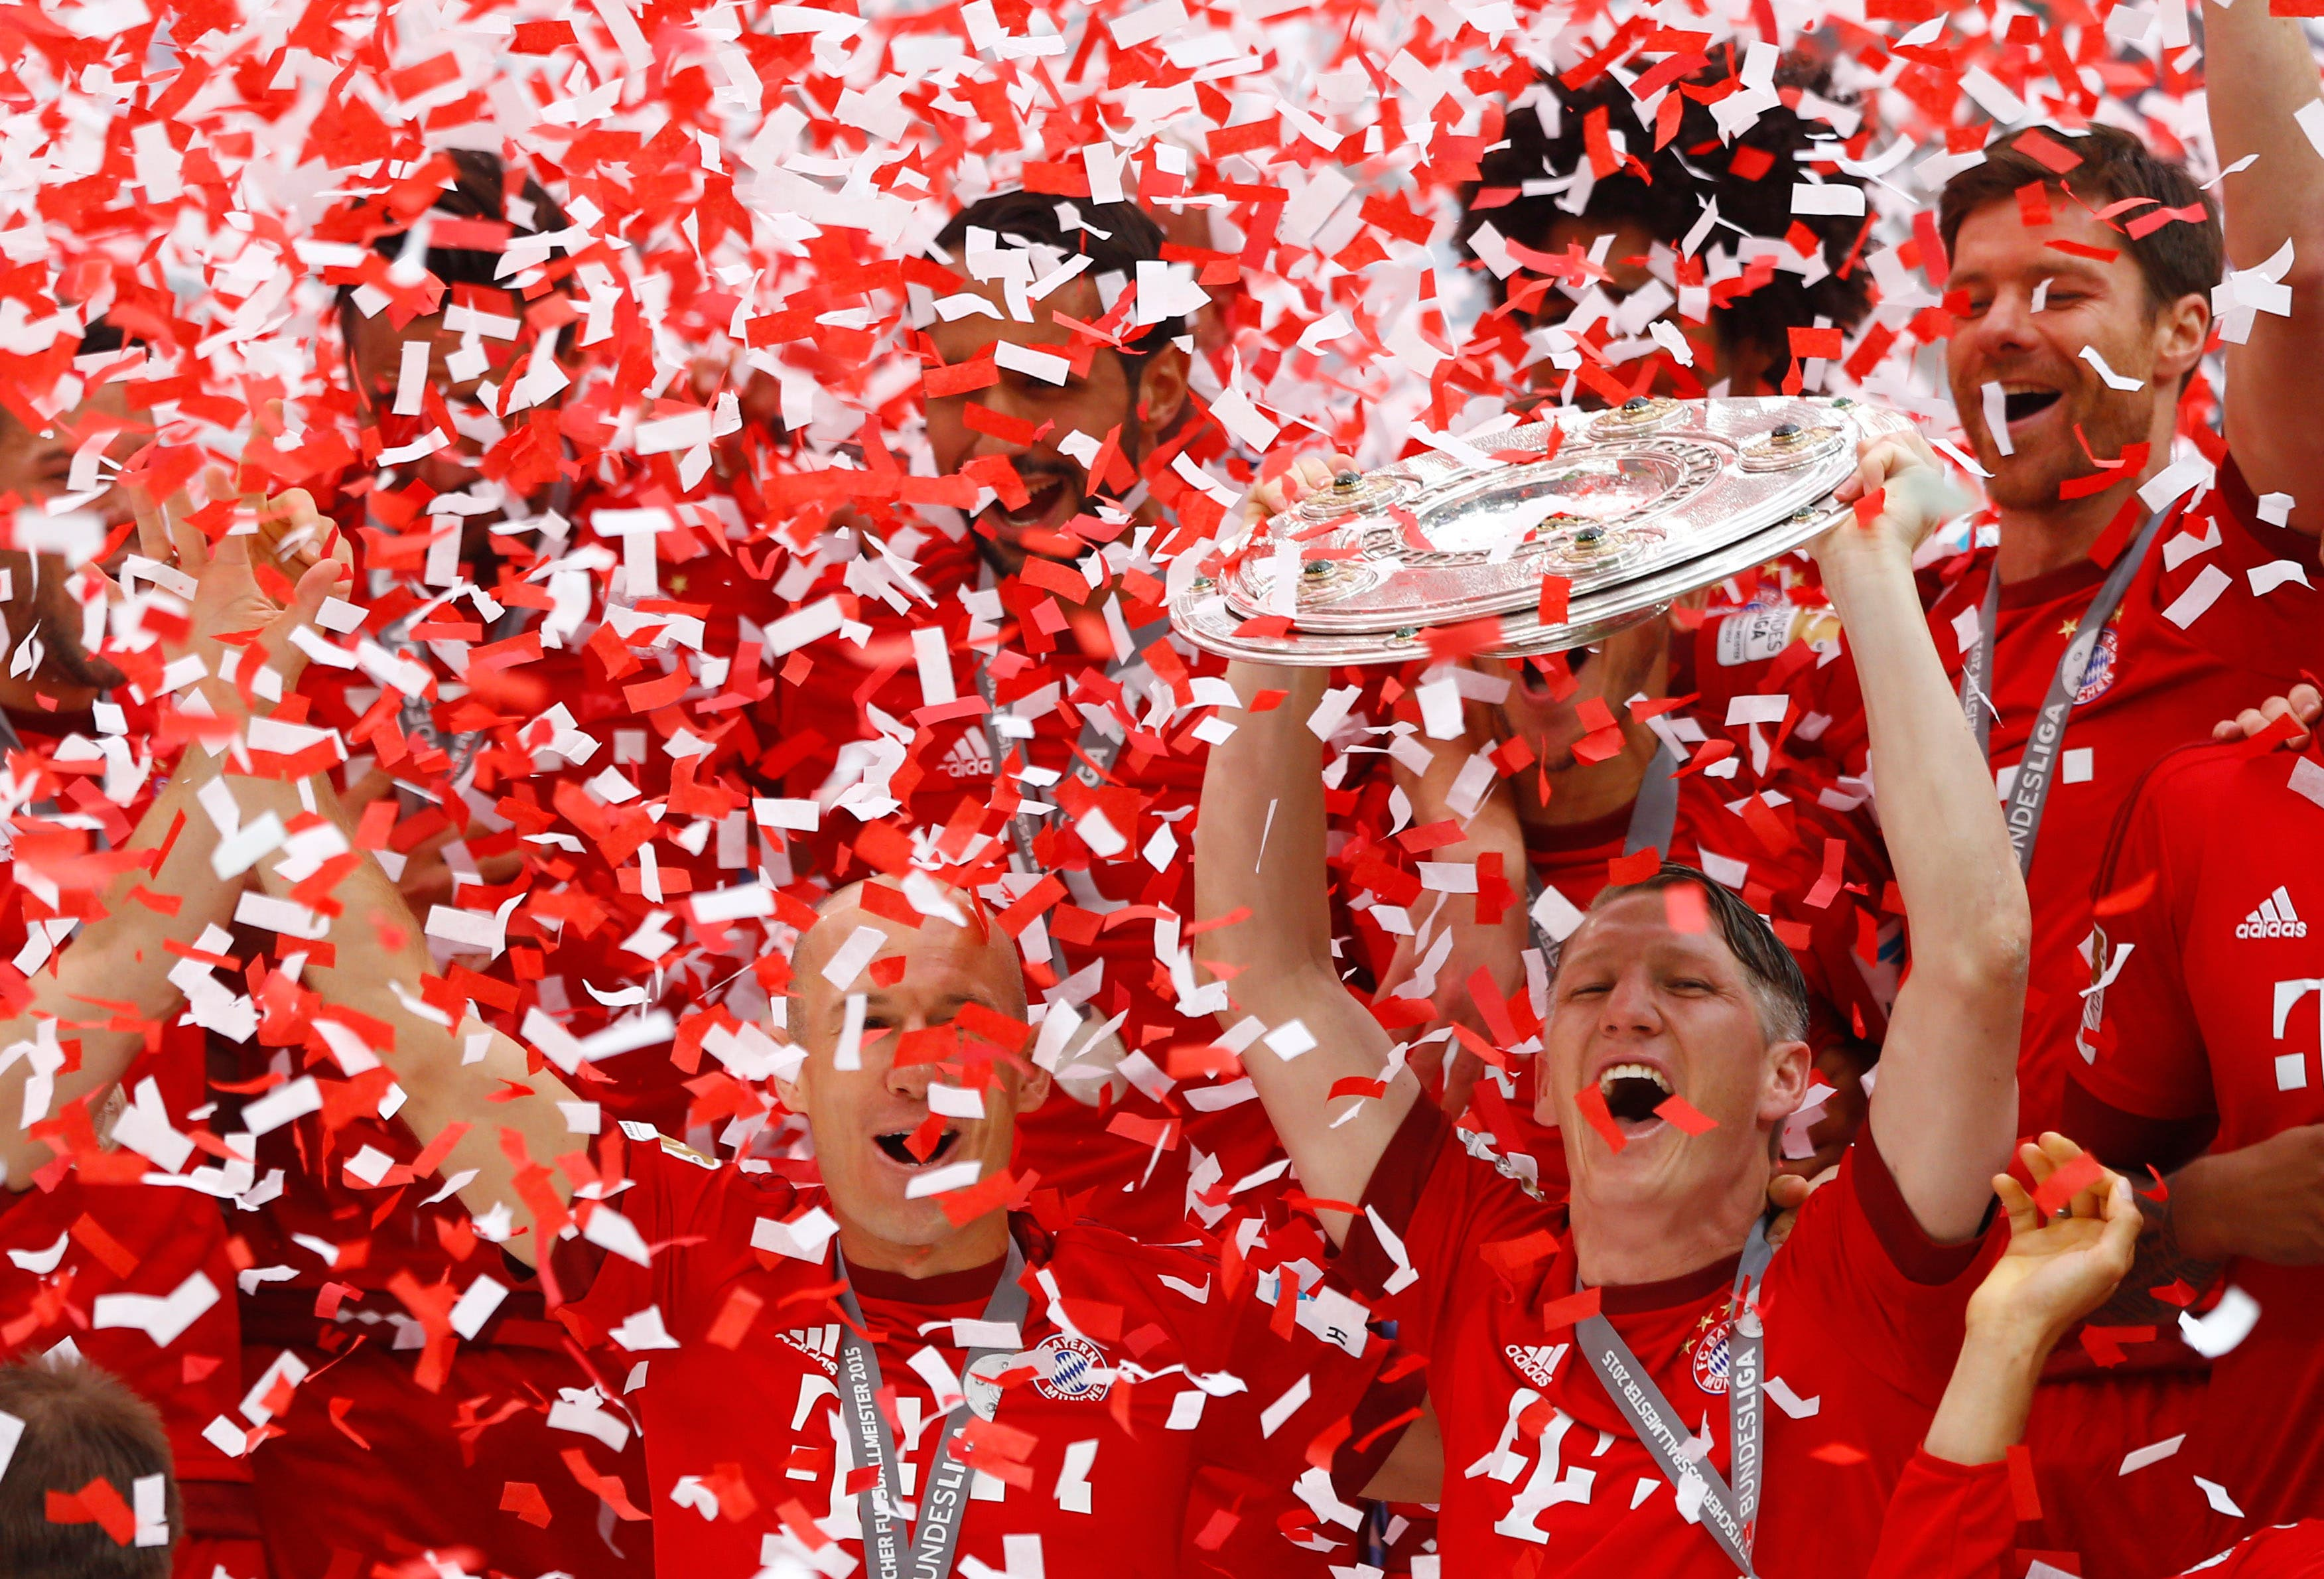 Bayern's Bastian Schweinsteiger, bottom right, lifts the trophy as his teammates Bayern's Arjen Robben from the Netherlands, left, and Bayern's Xabi Alonso from Spain look on after the German first division Bundesliga soccer match between FC Bayern Munich and FSV Mainz 05 at the Allianz Arena in Munich, Germany, Saturday, May 23, 2015. (AP Photo/Matthias Schrader)